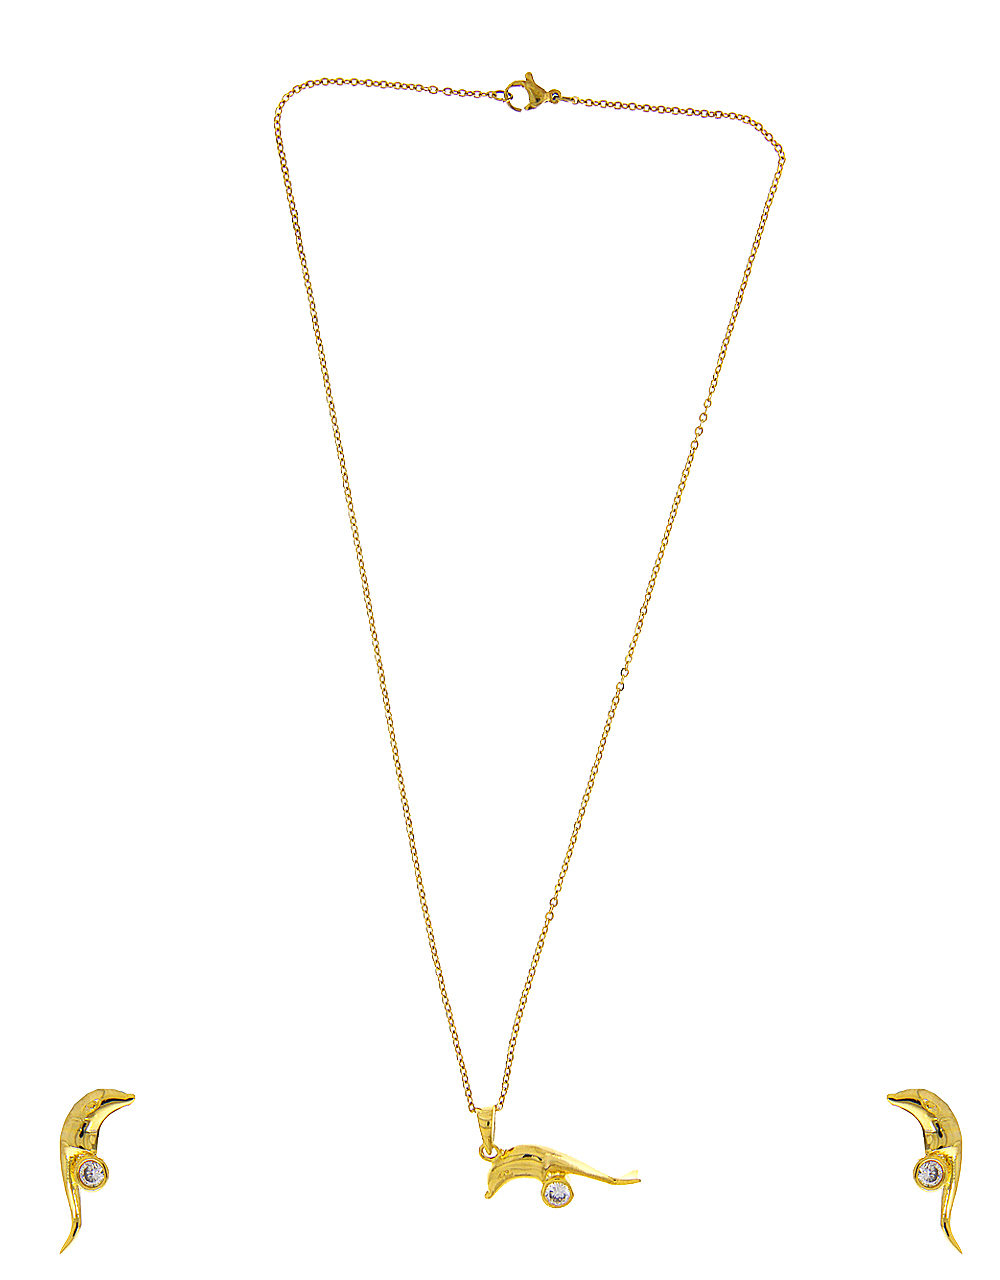 Gold Finish Styled With Dolphin Design Pendant Accessories